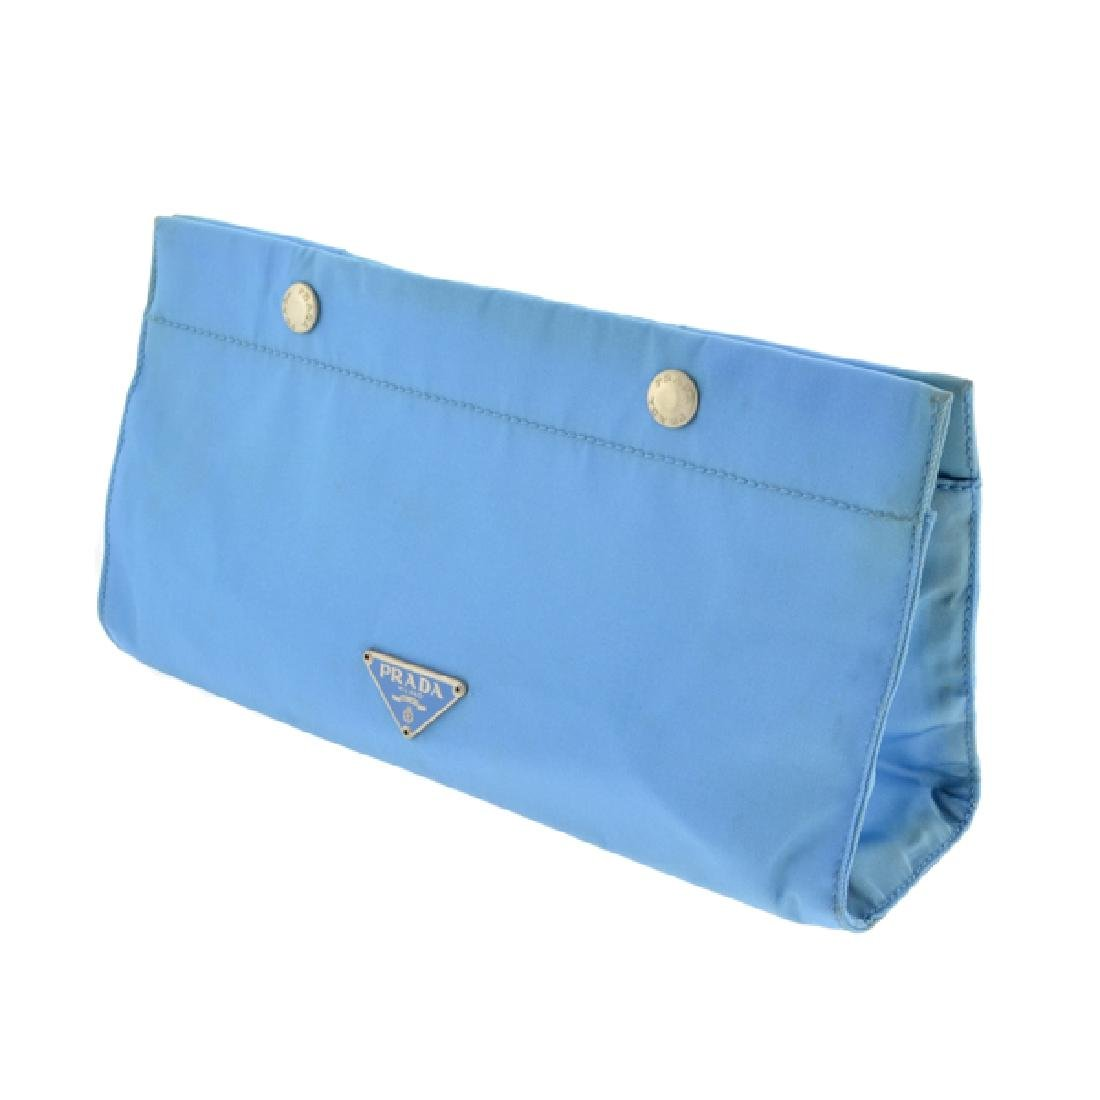 Prada Ligth Blue Cosmetic Pouch (Pre Owned) As Is